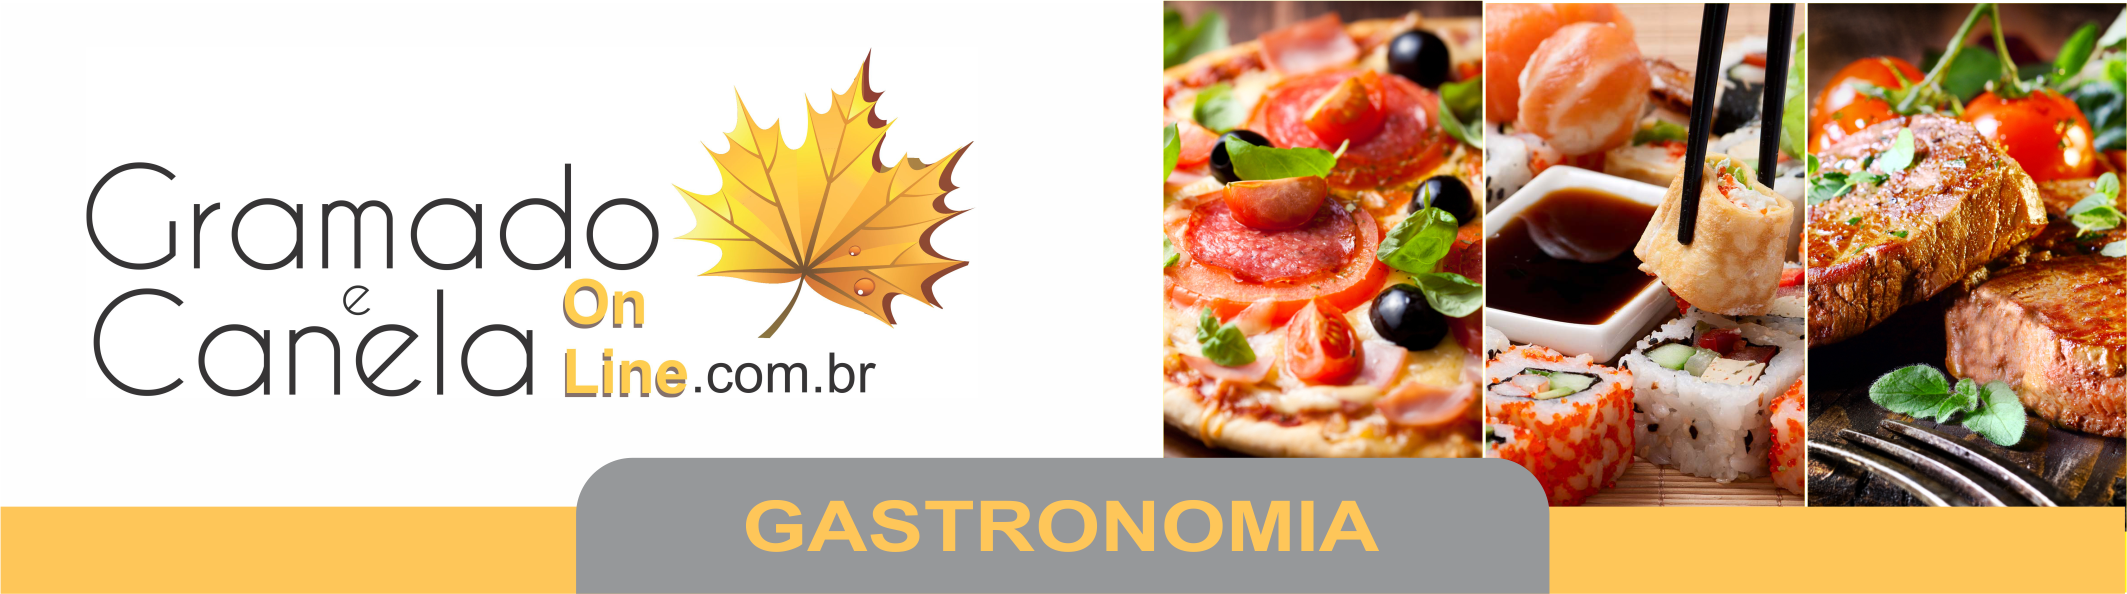 BANNER GASTRONOMIA CDR